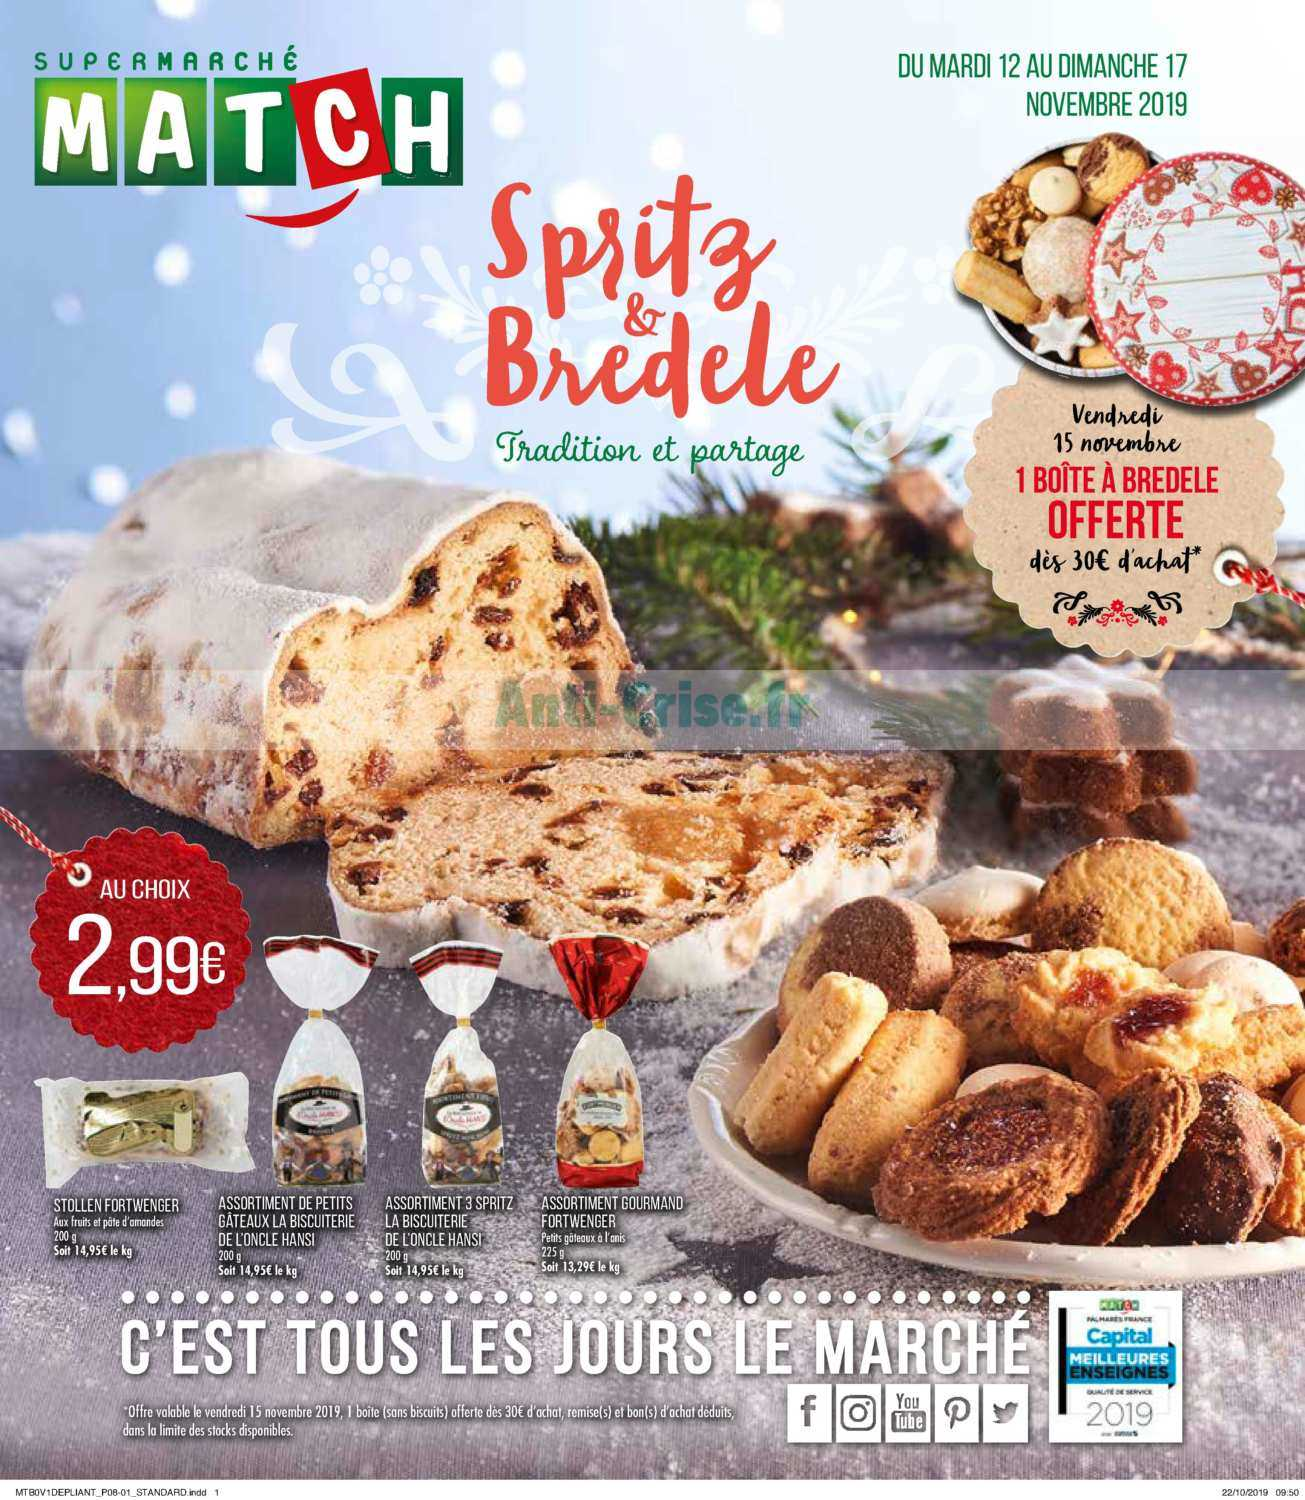 https://media.anti-crise.fr/2019/11/novembre2019match1211201917112019S0C0spritz-Bredele-1-261x300.jpg